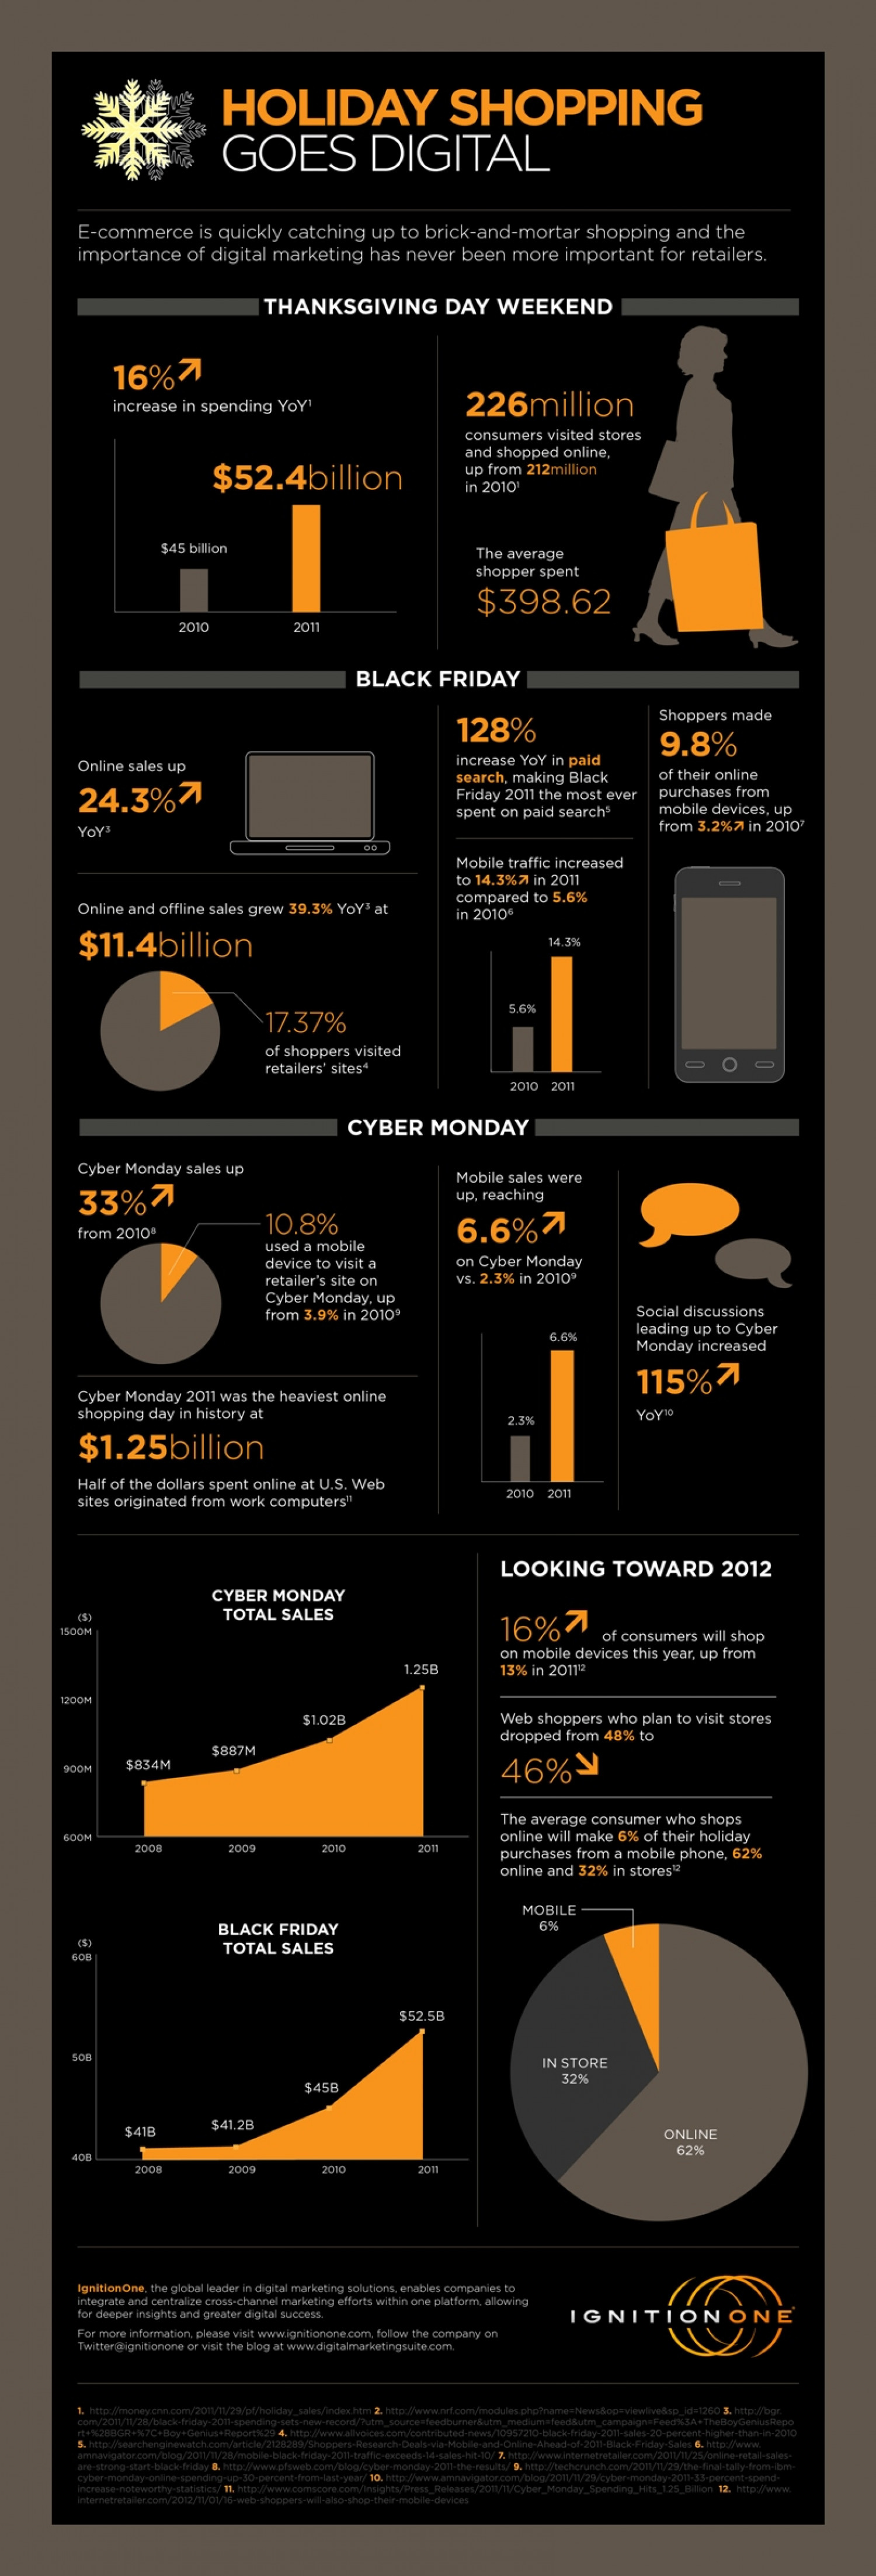 Holiday Shopping Goes Digital Infographic